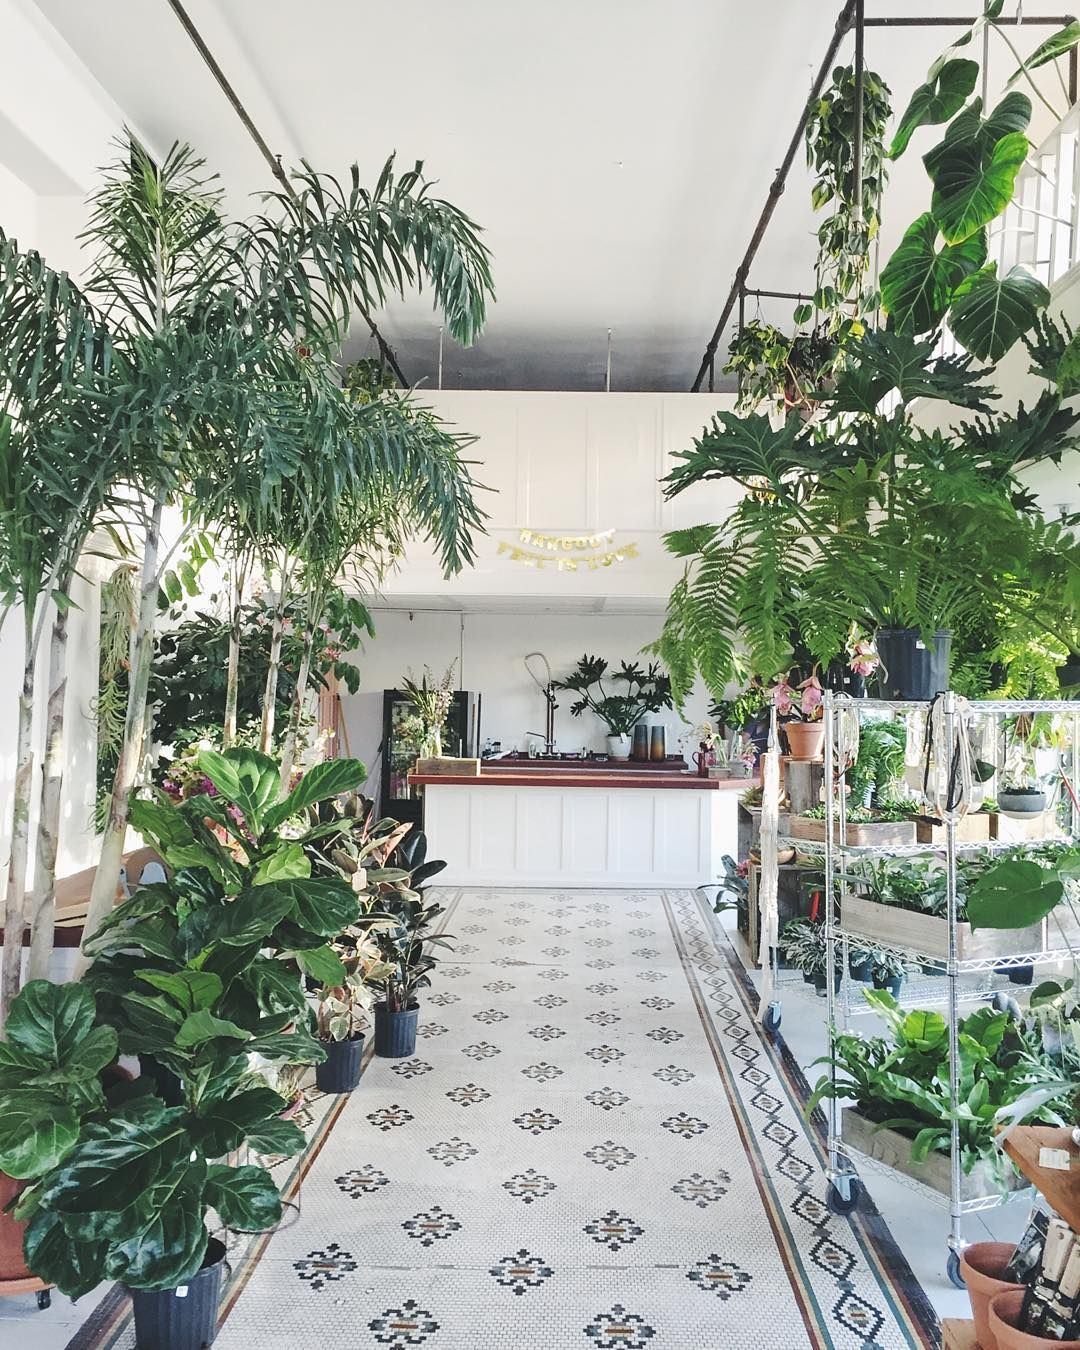 Fresh Indoor Plants Decoration Ideas For Interior Home: Florist • Plant Shop Owner • Portland, Oregon.